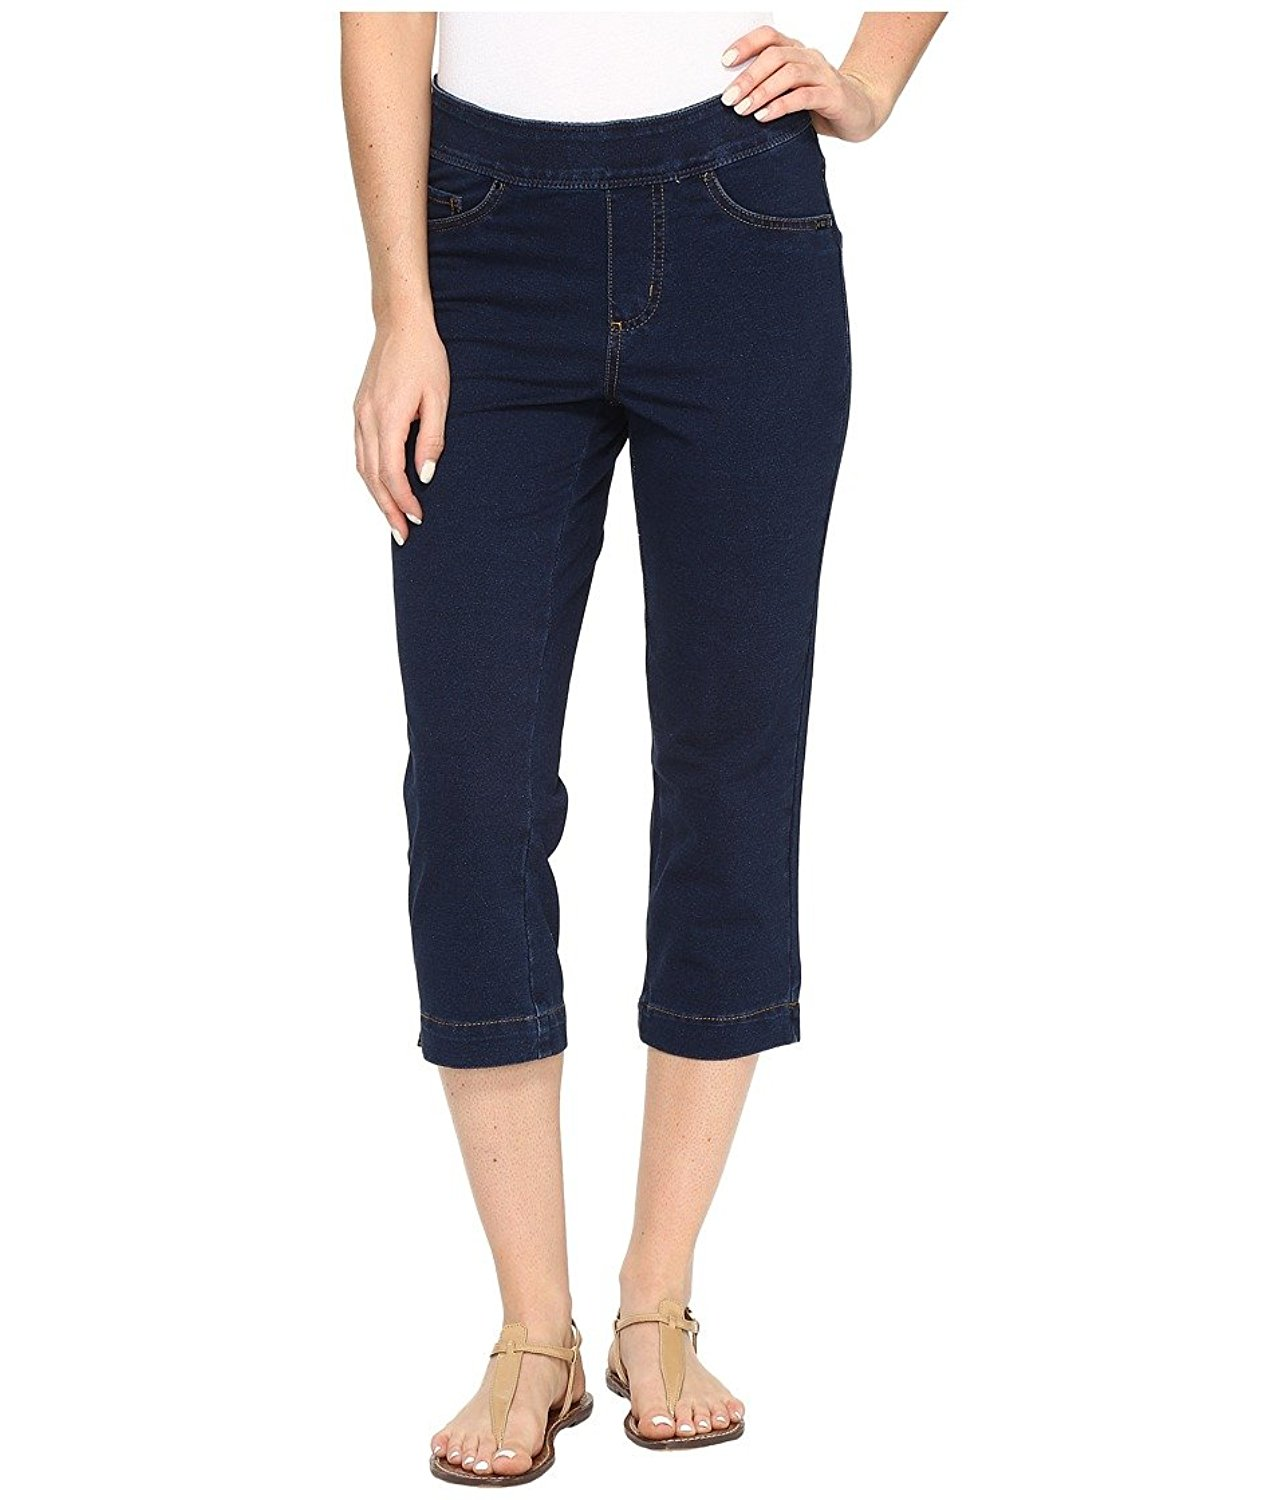 8736b6feaaa Get Quotations · FDJ French Dressing Jeans Womens Comfy Denim Wonderwaist  Pull-On Capris In Indigo